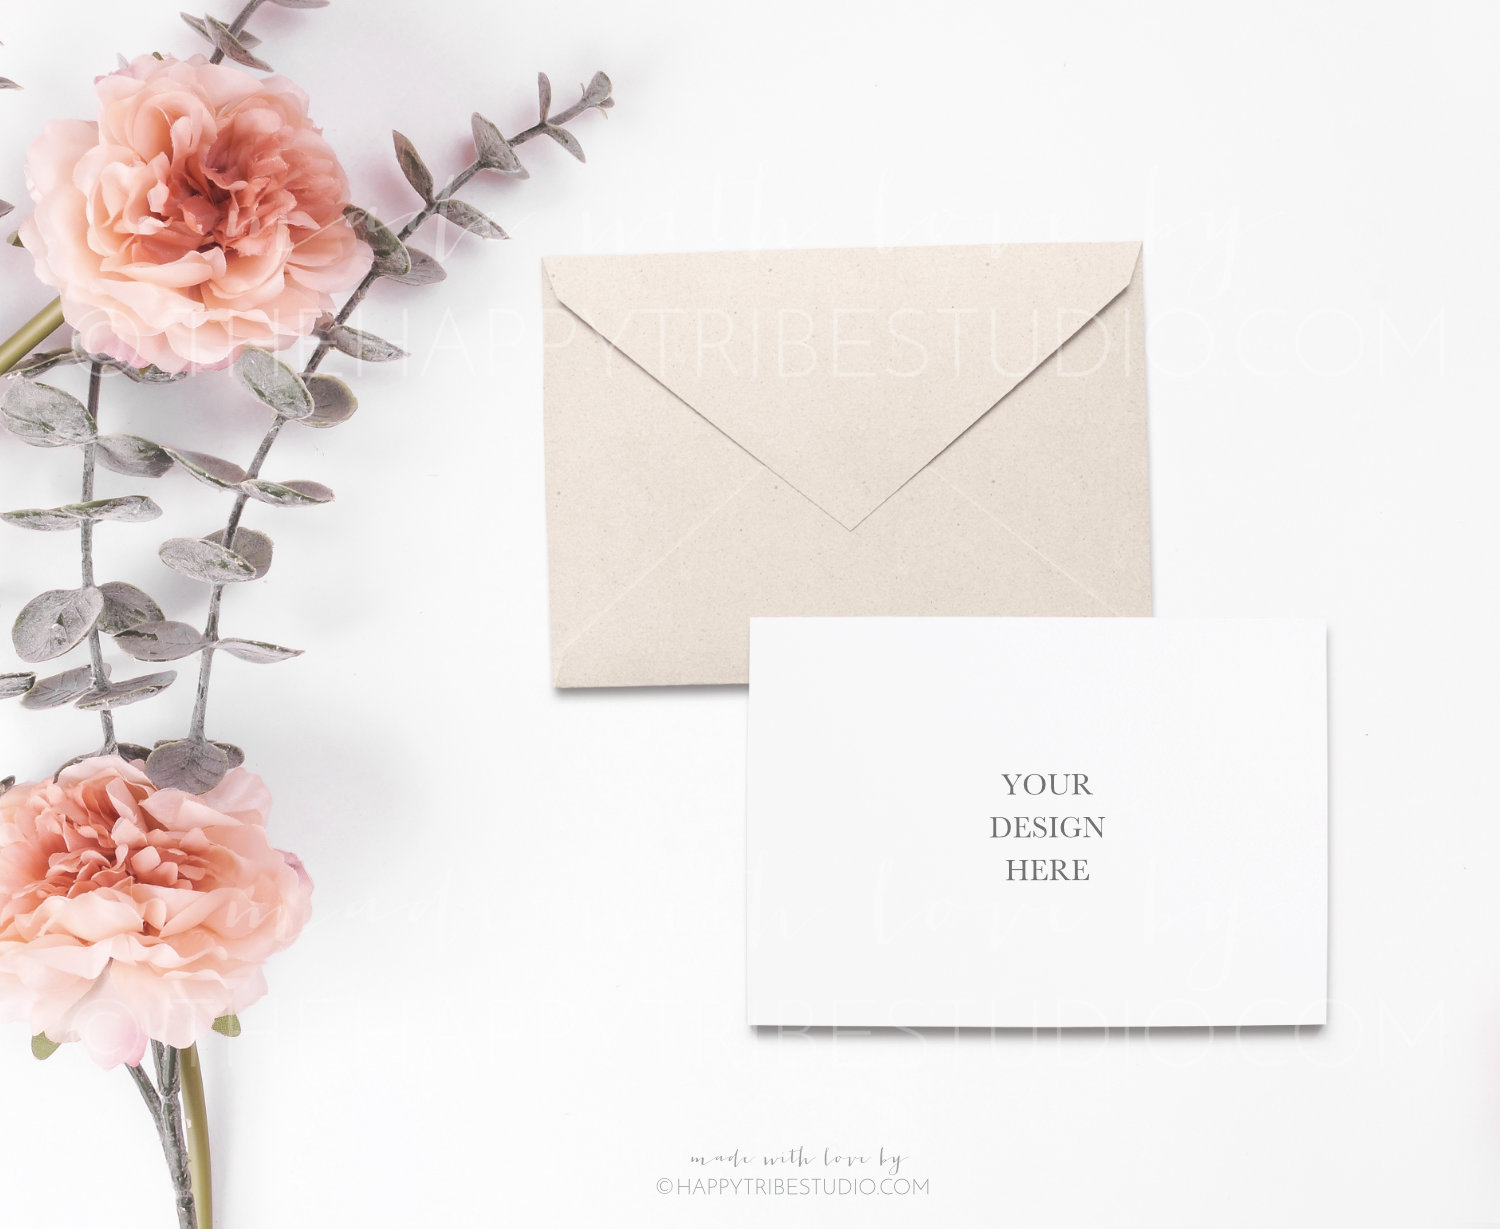 Stationery Mockup Bundle example image 5